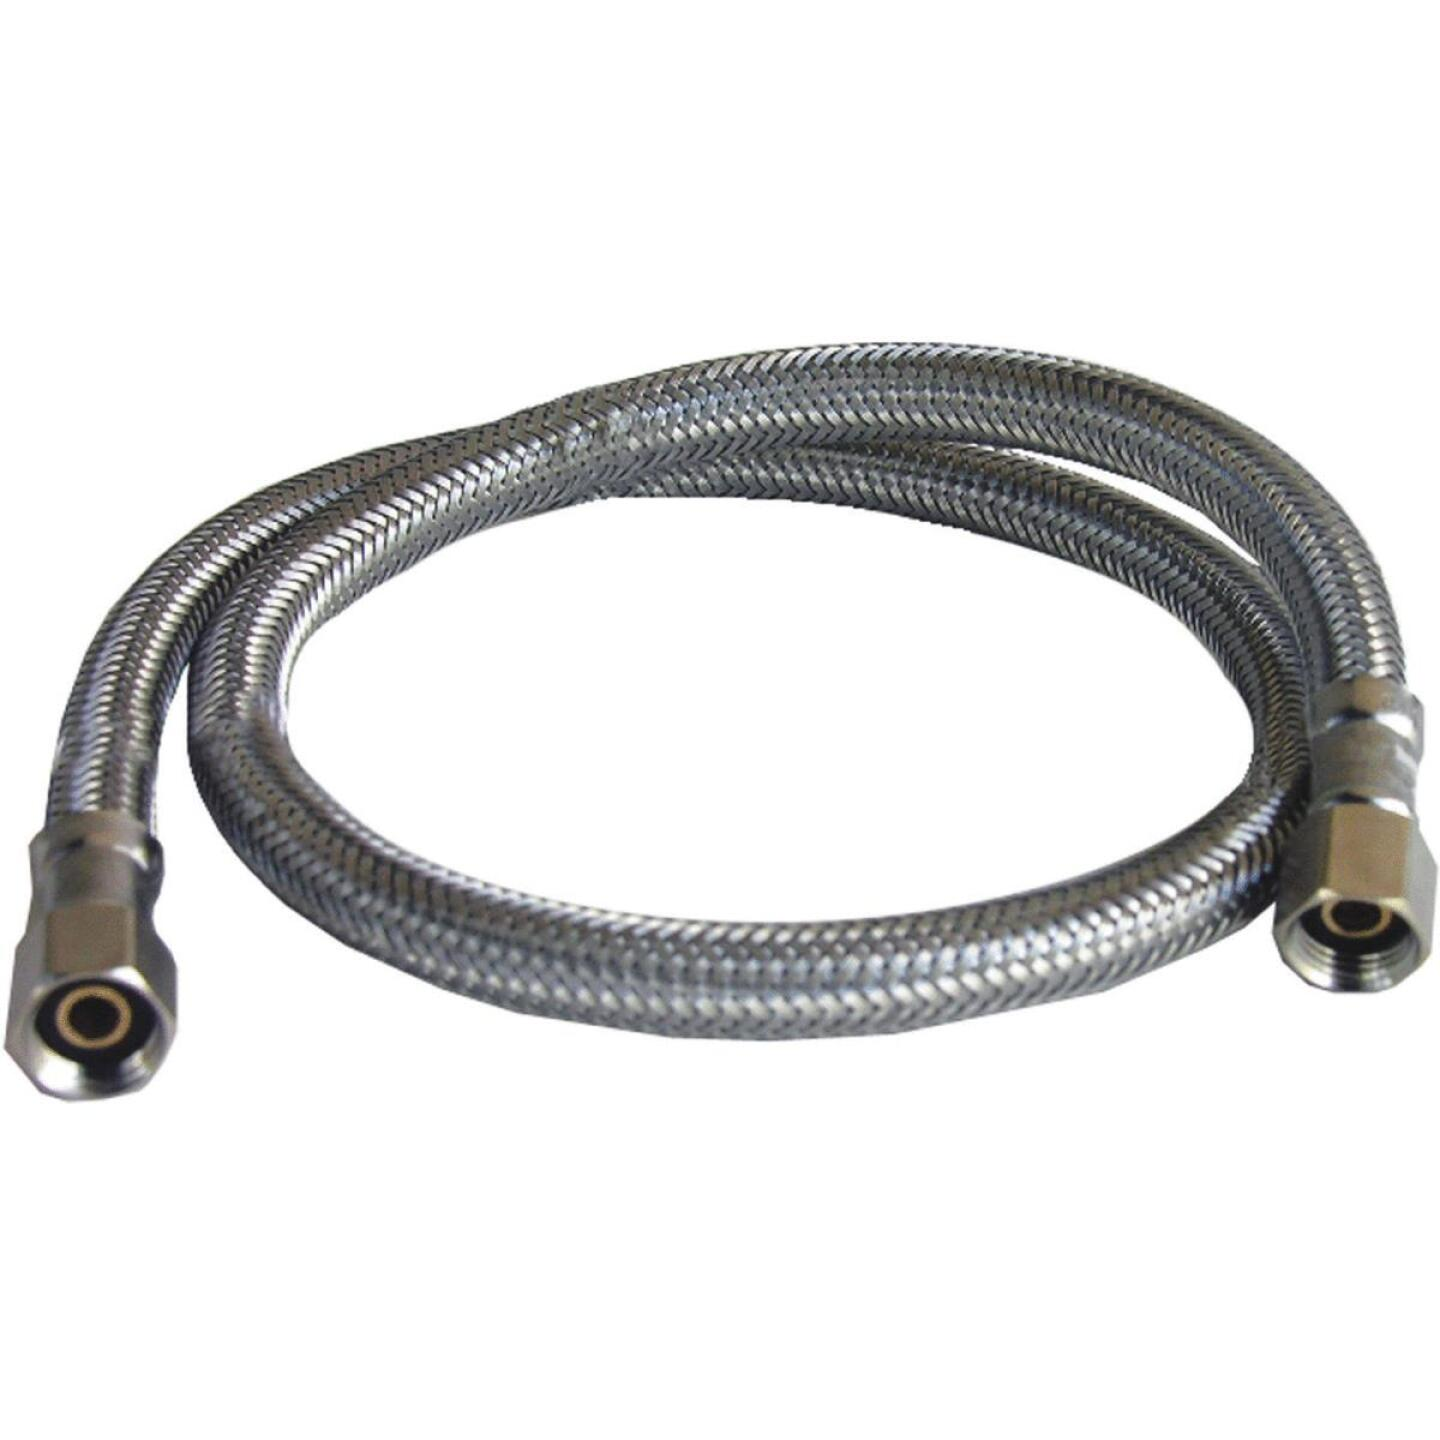 Lasco 1/4 In. x 1/4 In. x 24 In. Length Braided Supply Ice Maker Connector Hose Image 1